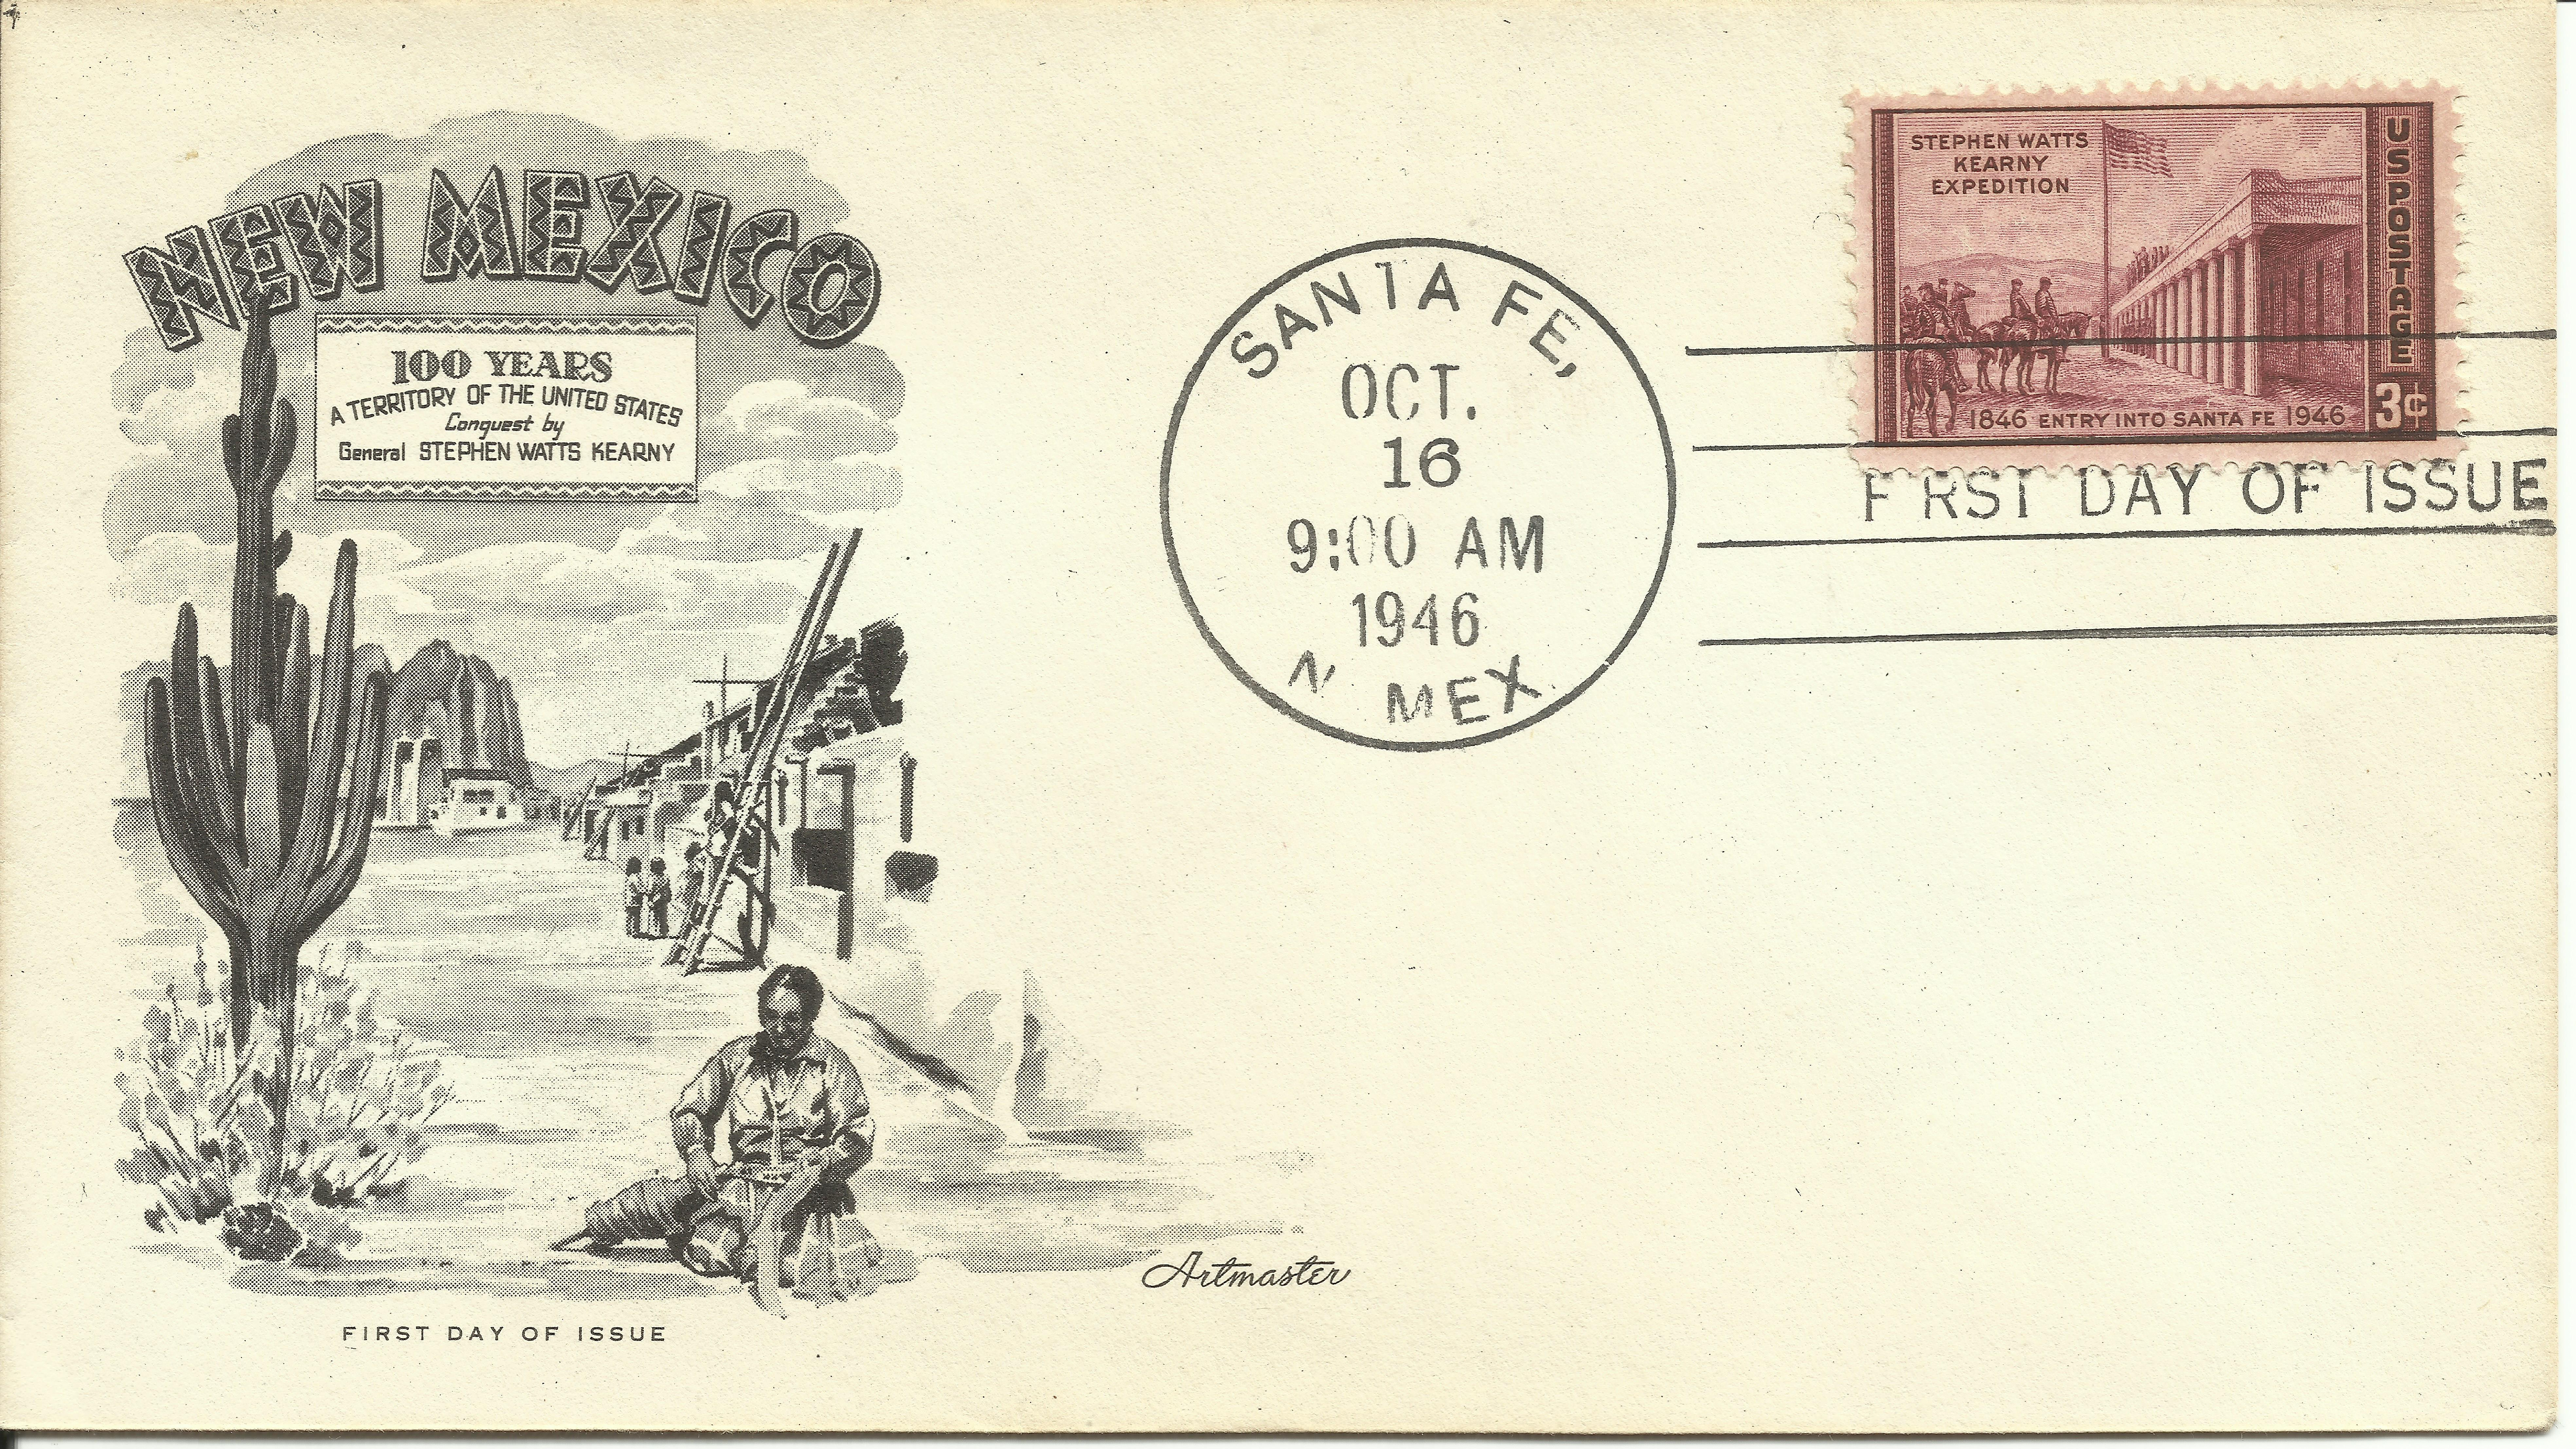 United States - Scott #944 (1946) first day cover